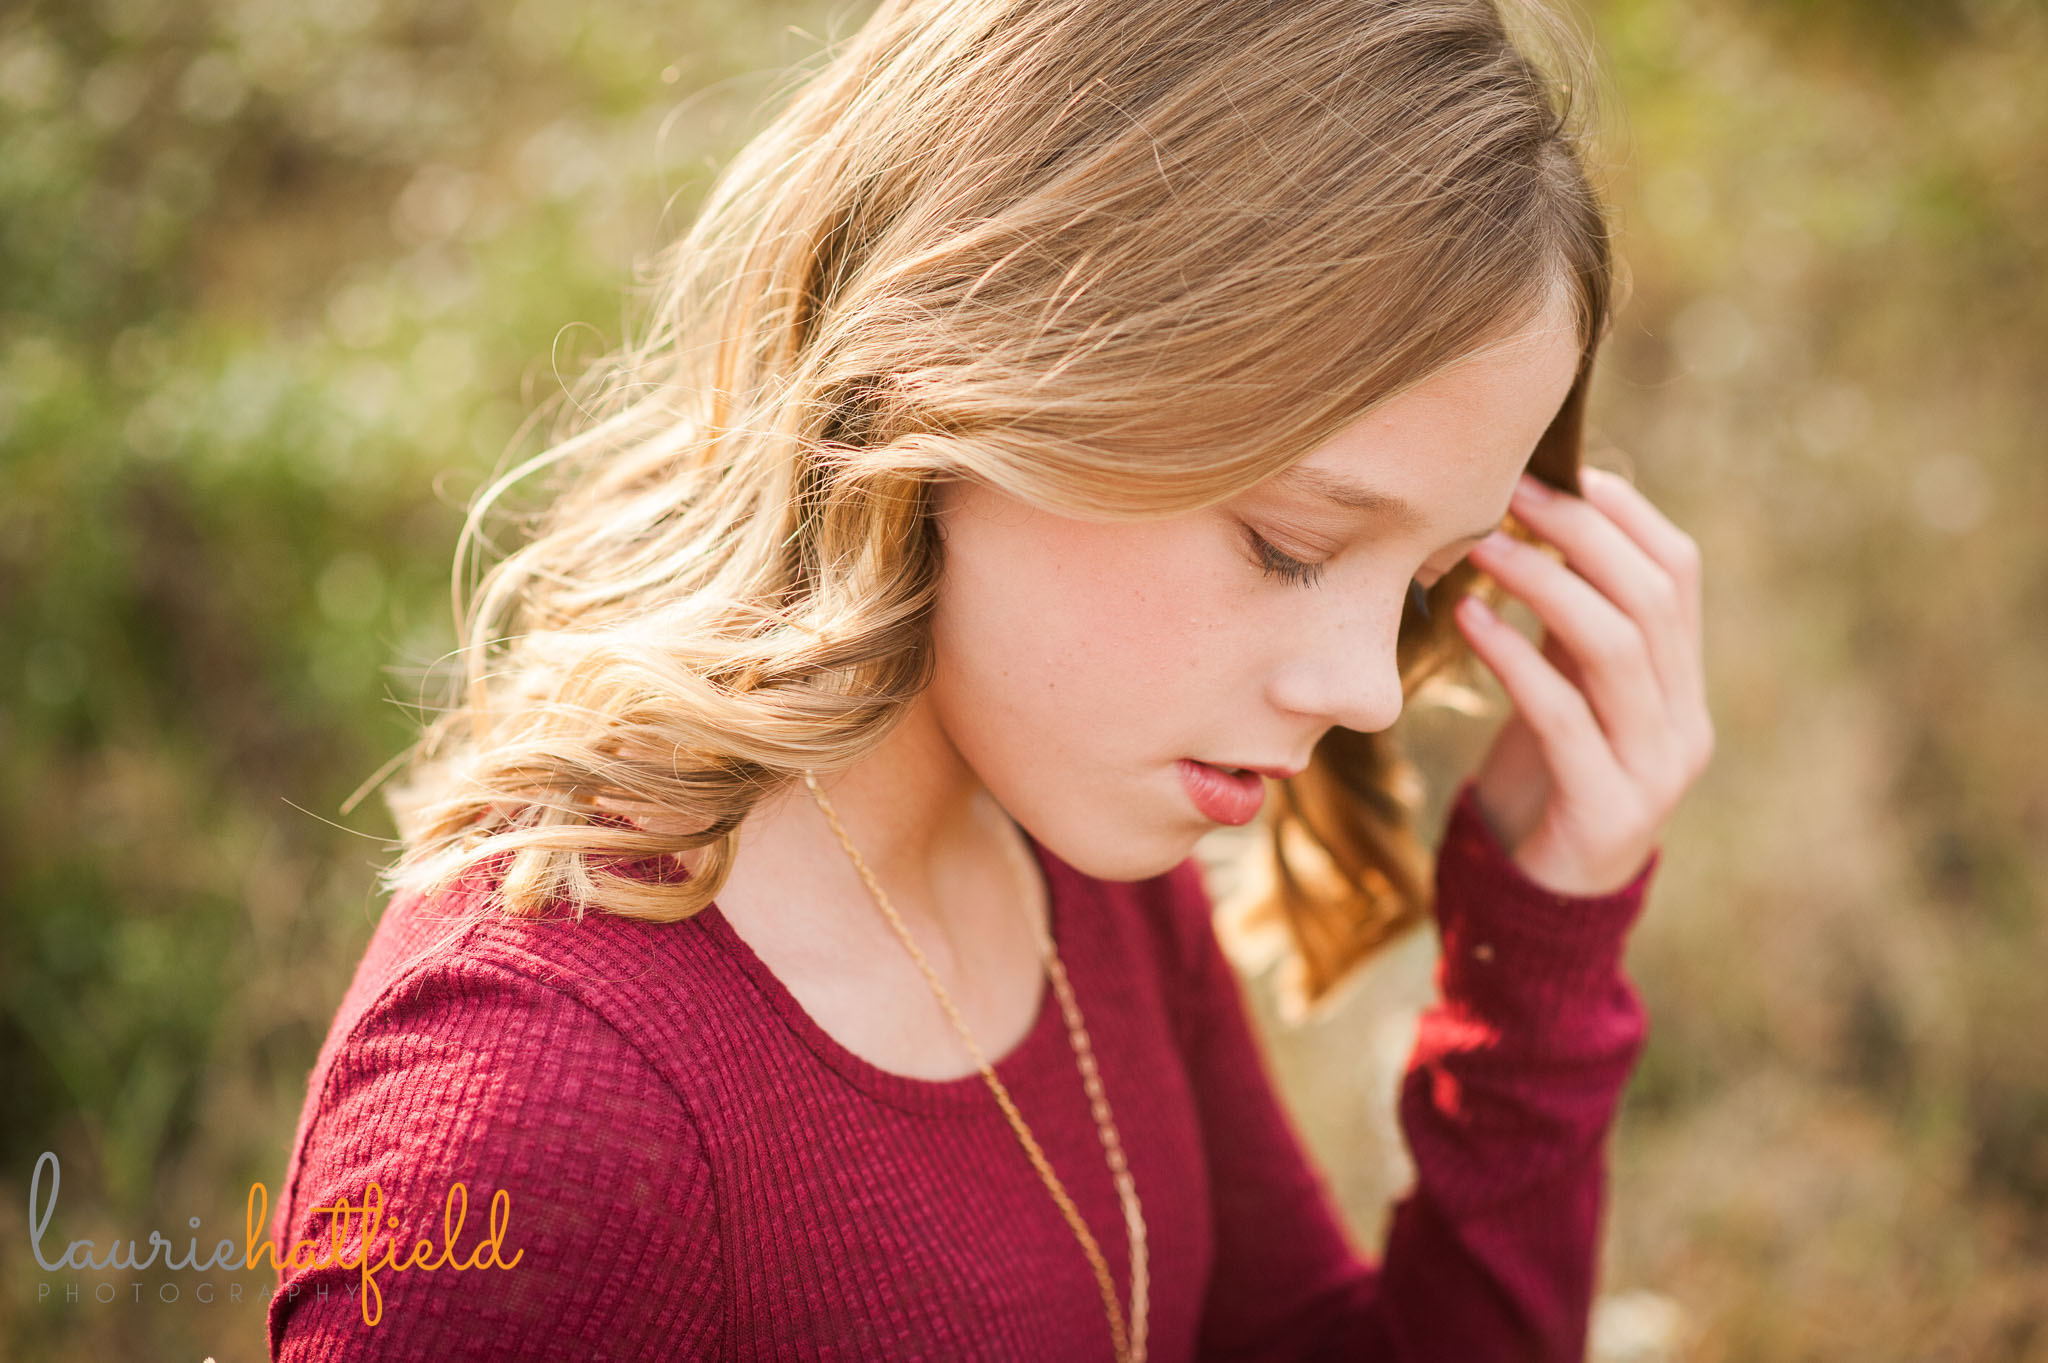 middle school girl | Mobile family photographer